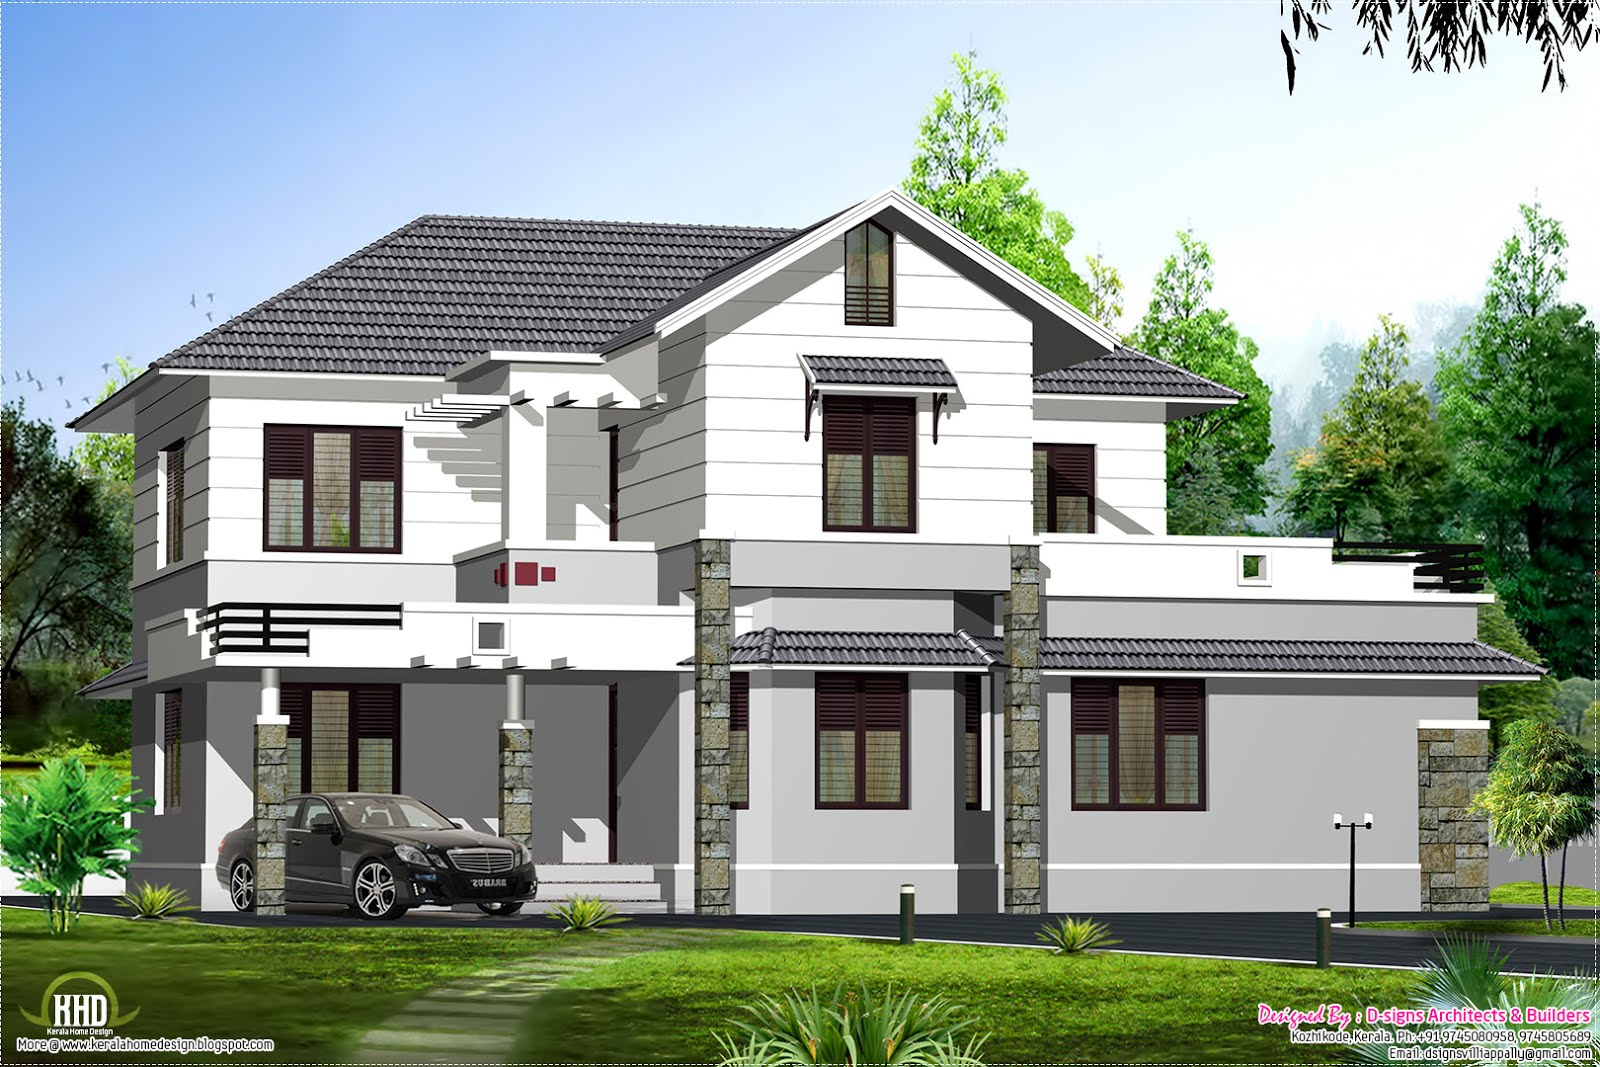 Kerala Style Sloping Roof Villa Design Kerala Home Design And Floor Plans